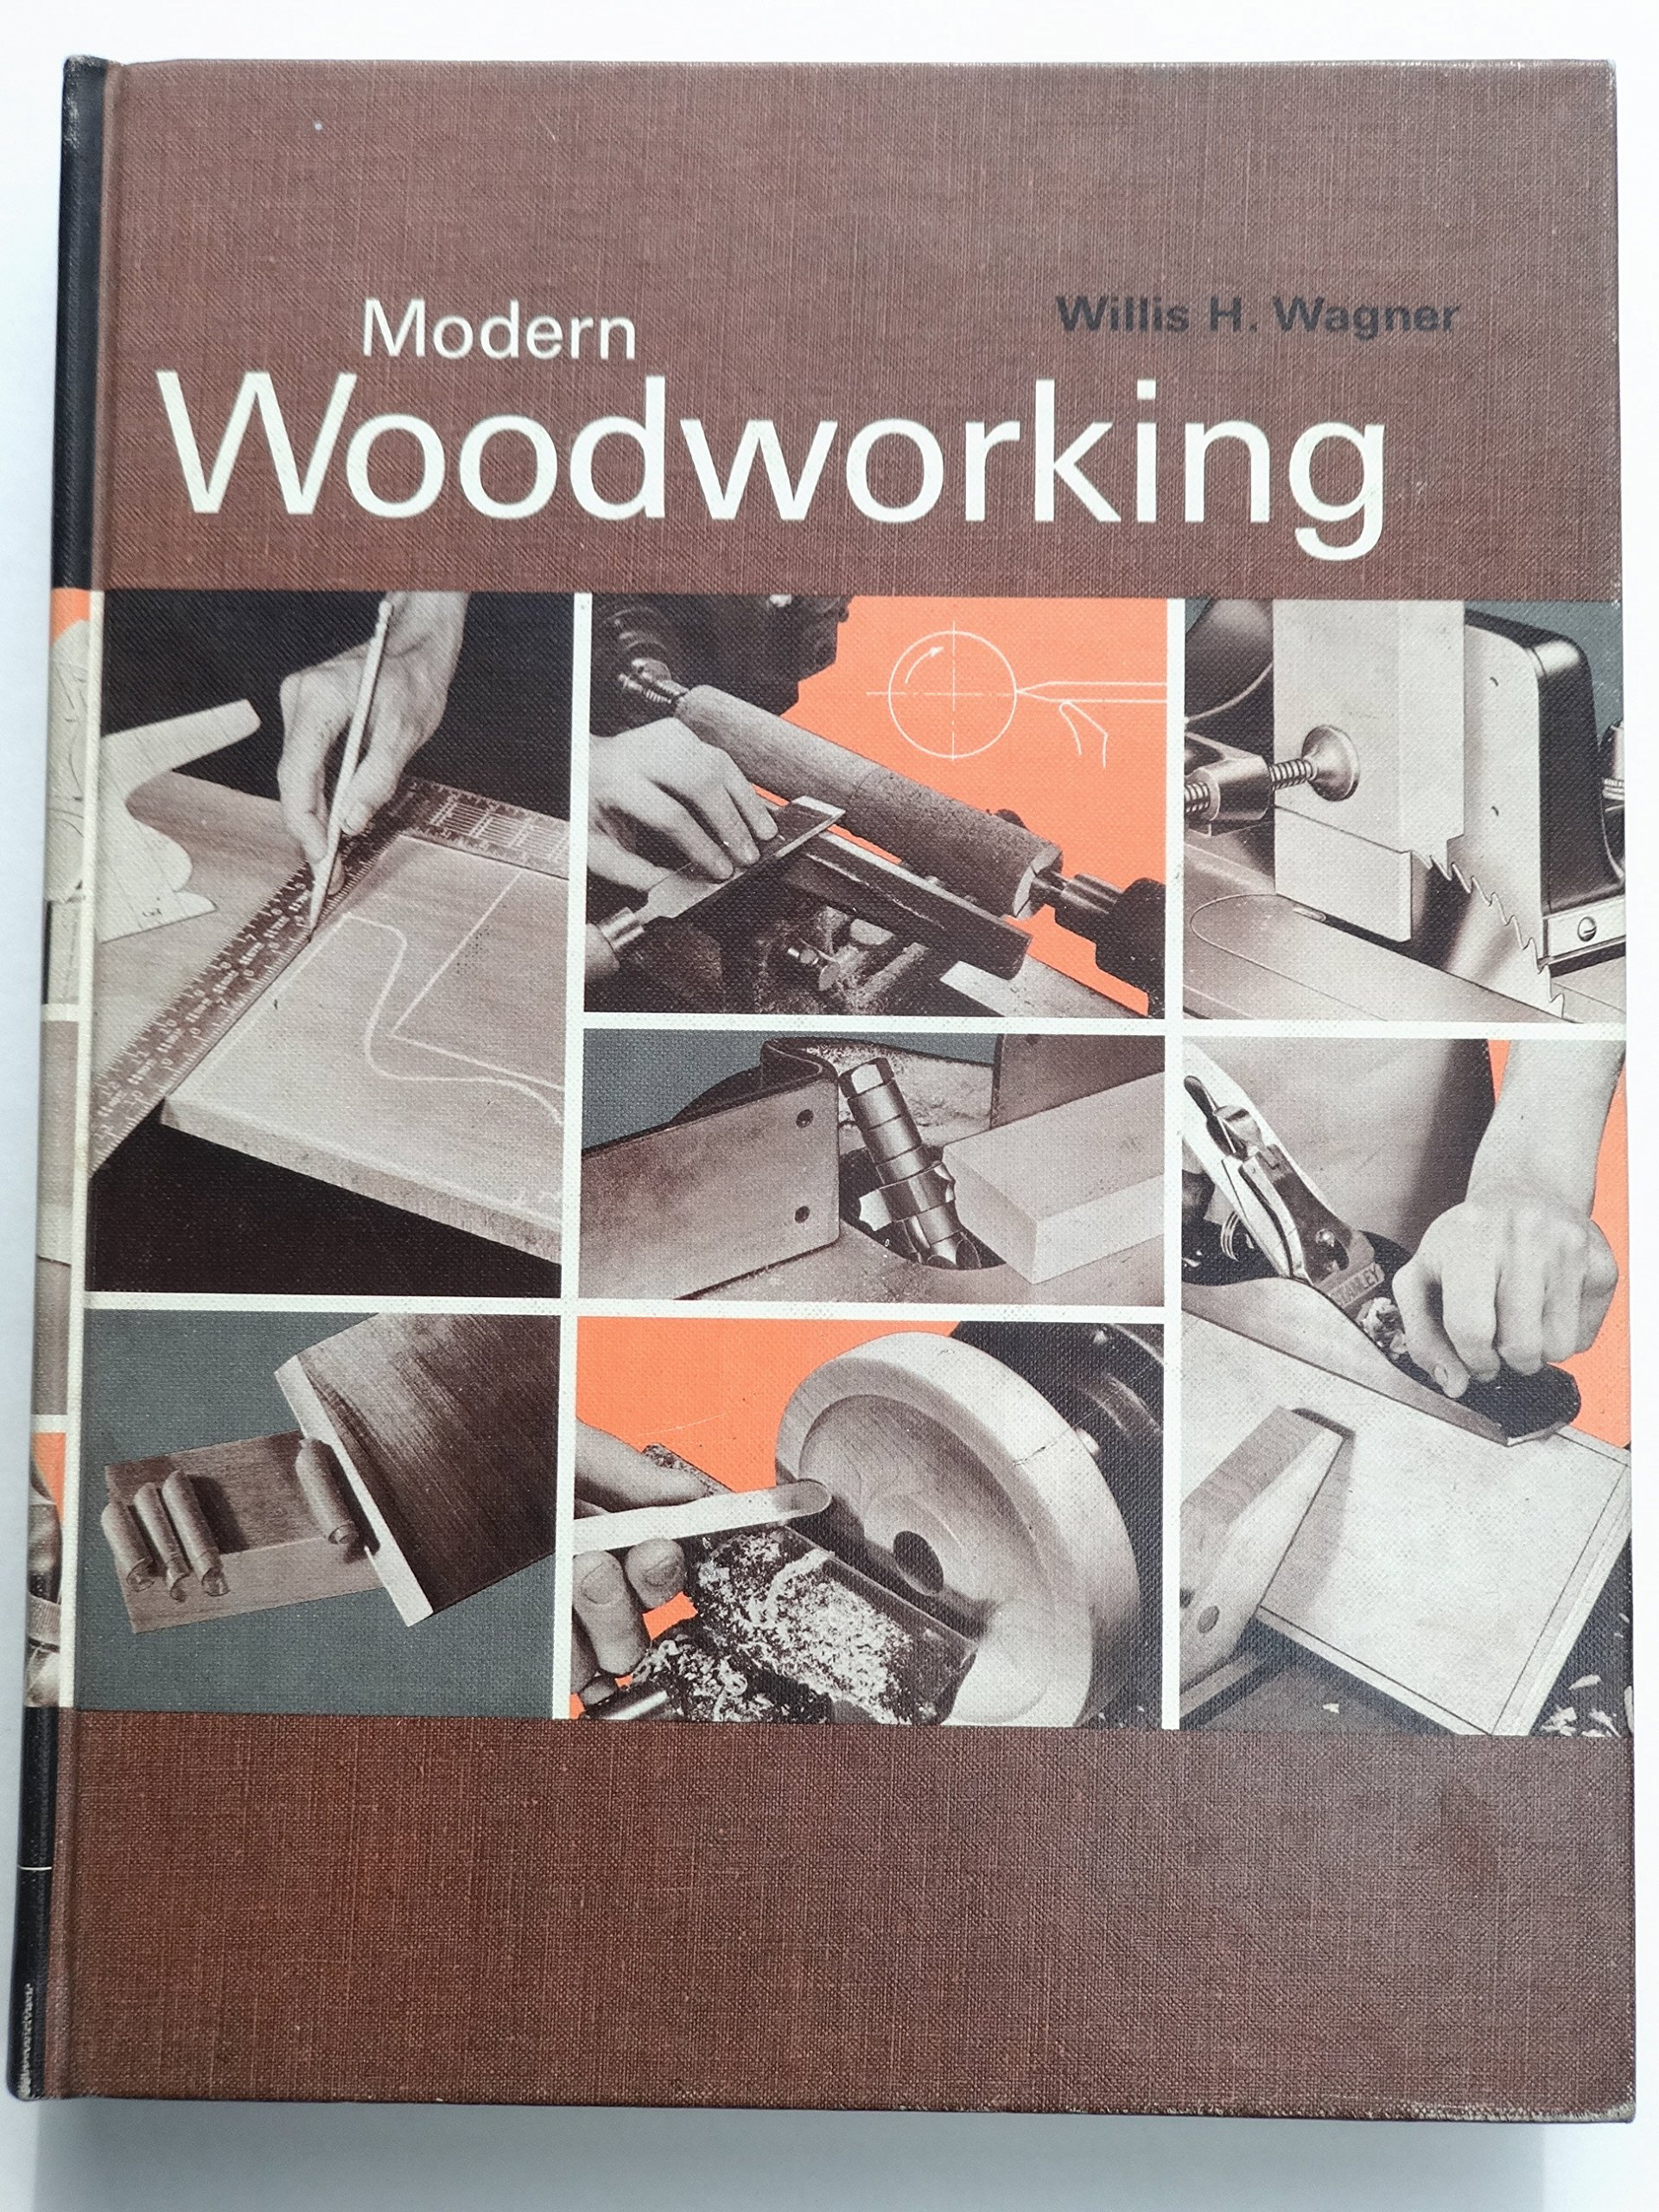 modern-woodworking-tools-materials-and-procedures